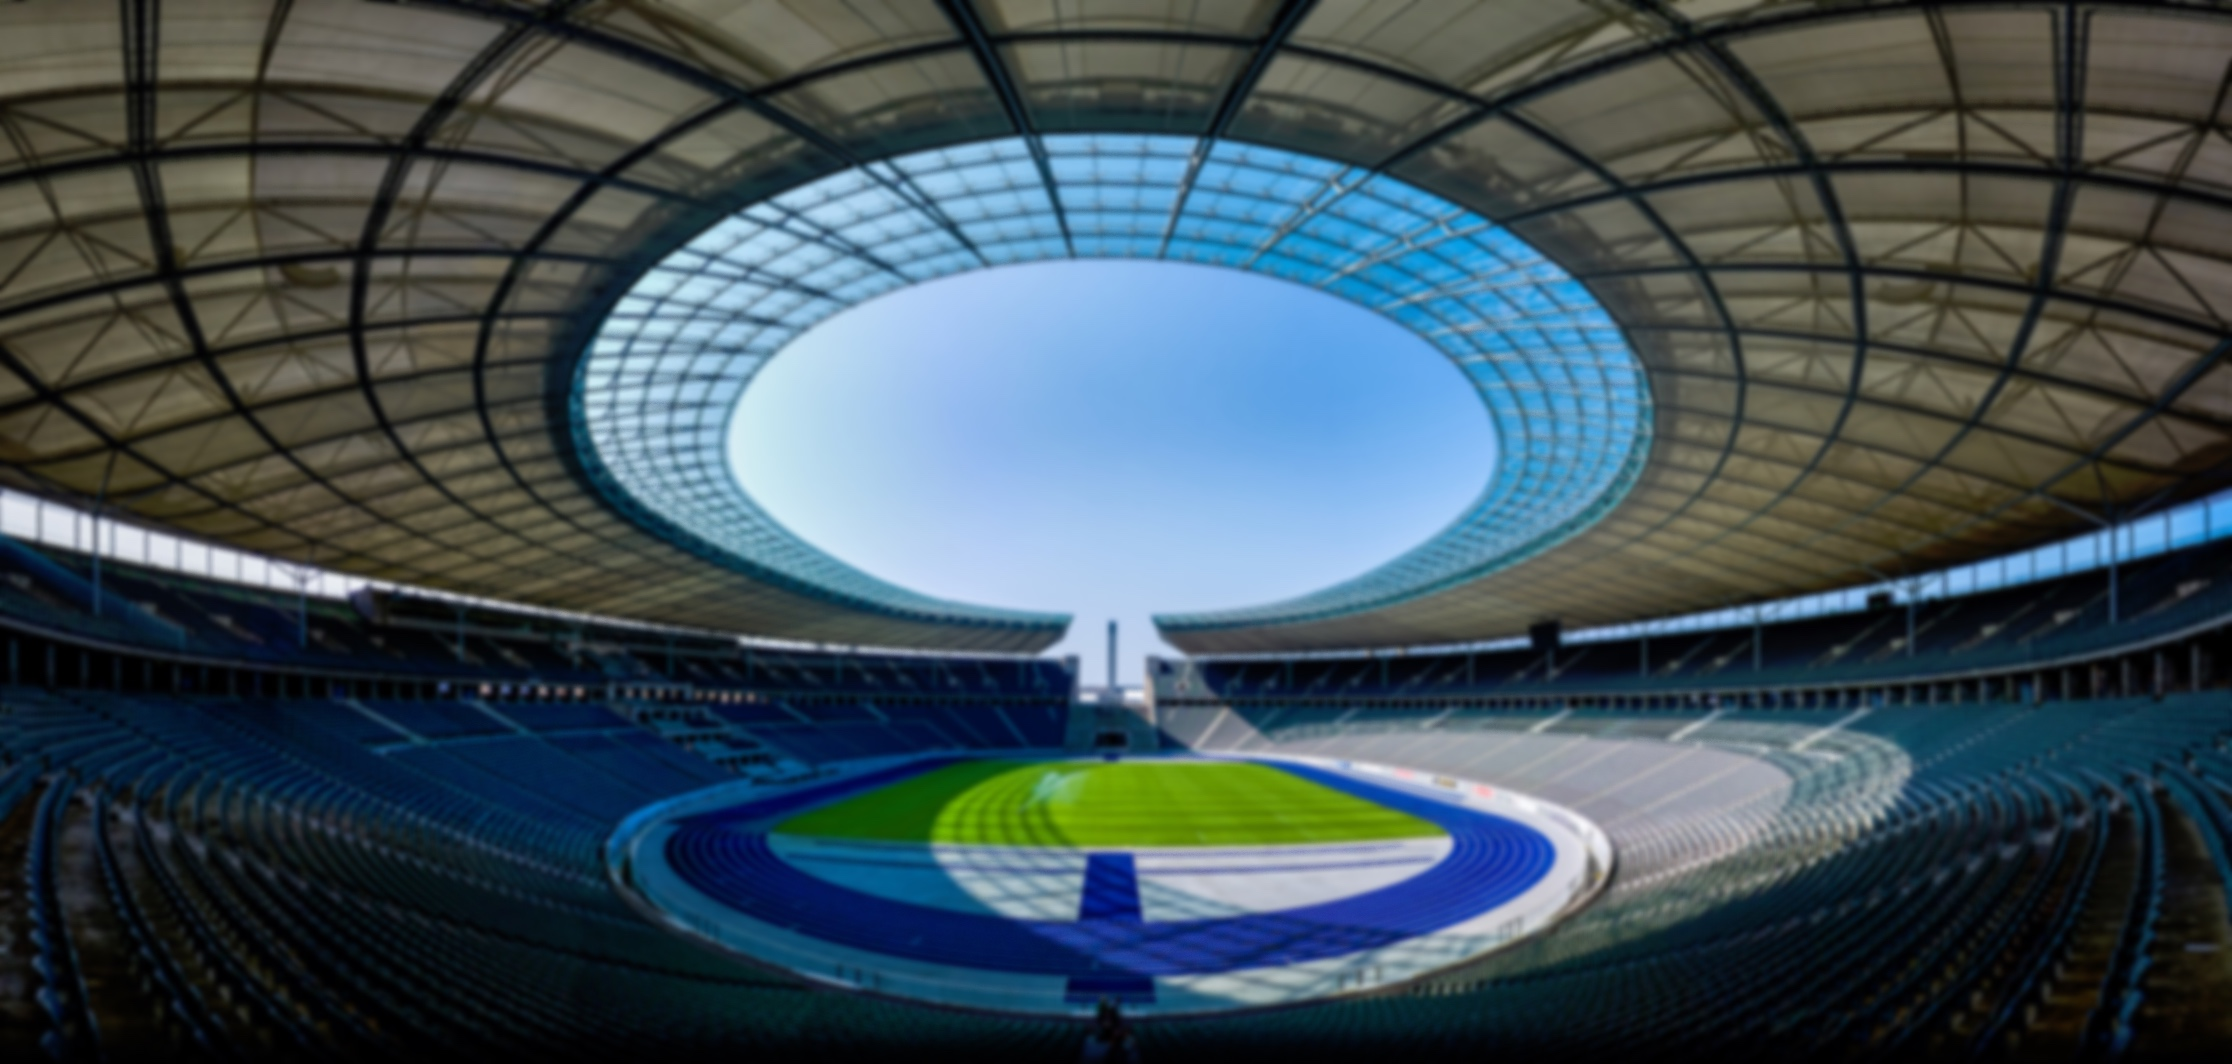 Stadiums and Sports Arenas    There are huge savings to be made on energy costs   Call us and we will take care of the rest   FIND OUT HOW   GET IN TOUCH